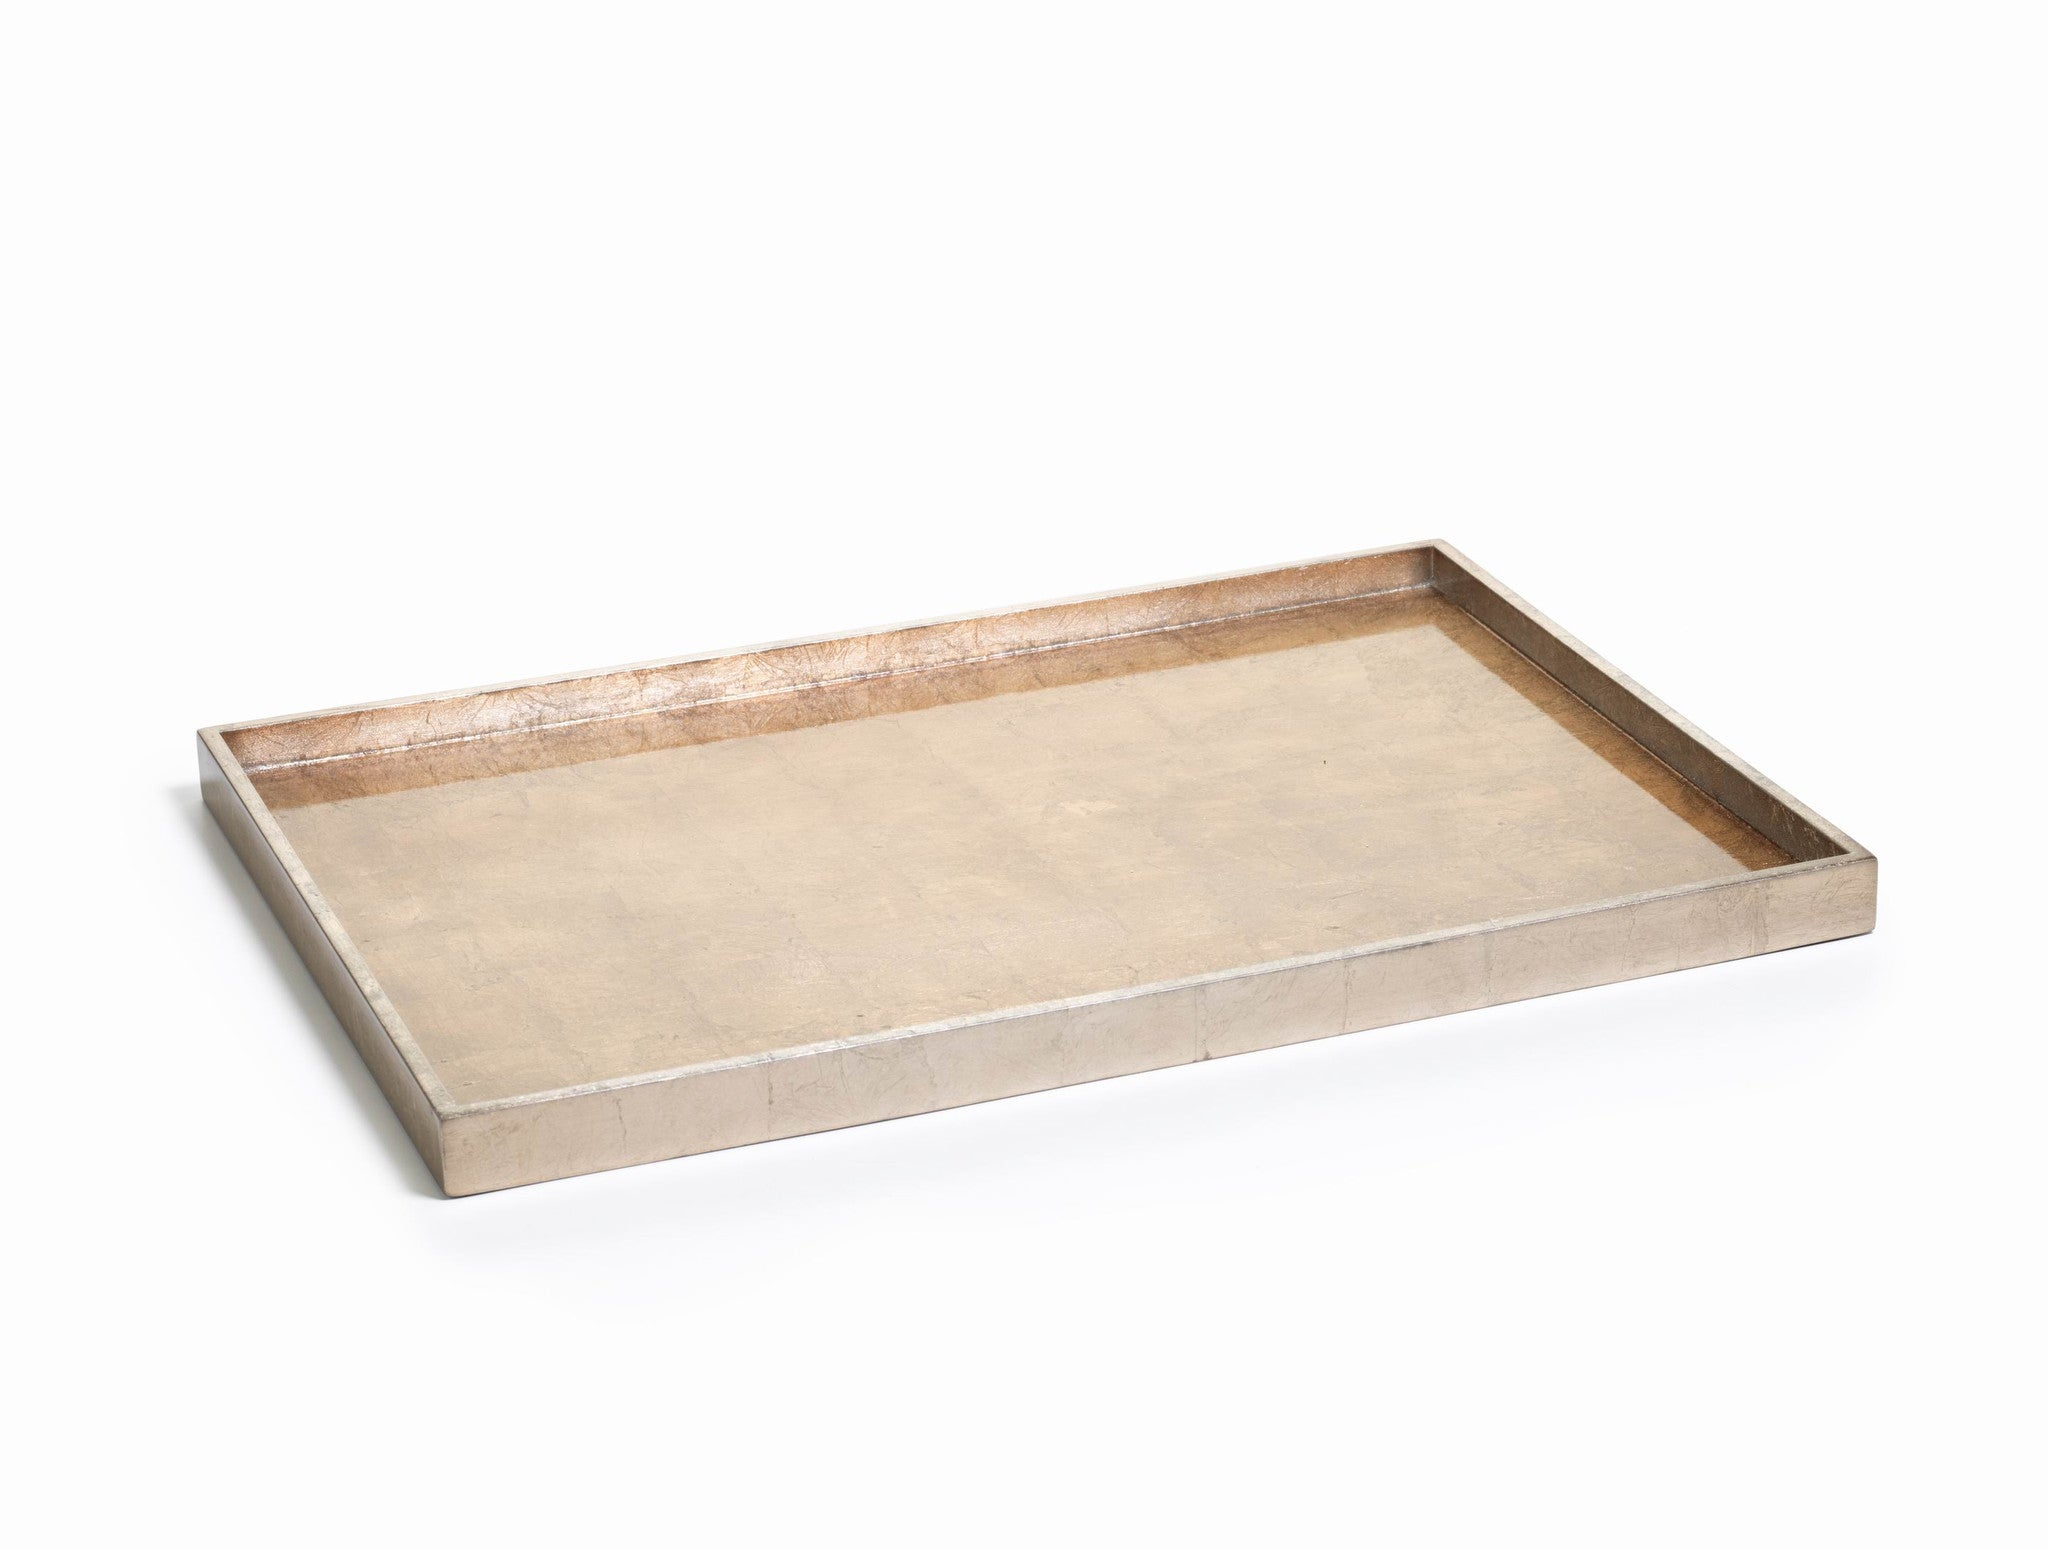 Antique Gold & Silver Serving Tray - CARLYLE AVENUE